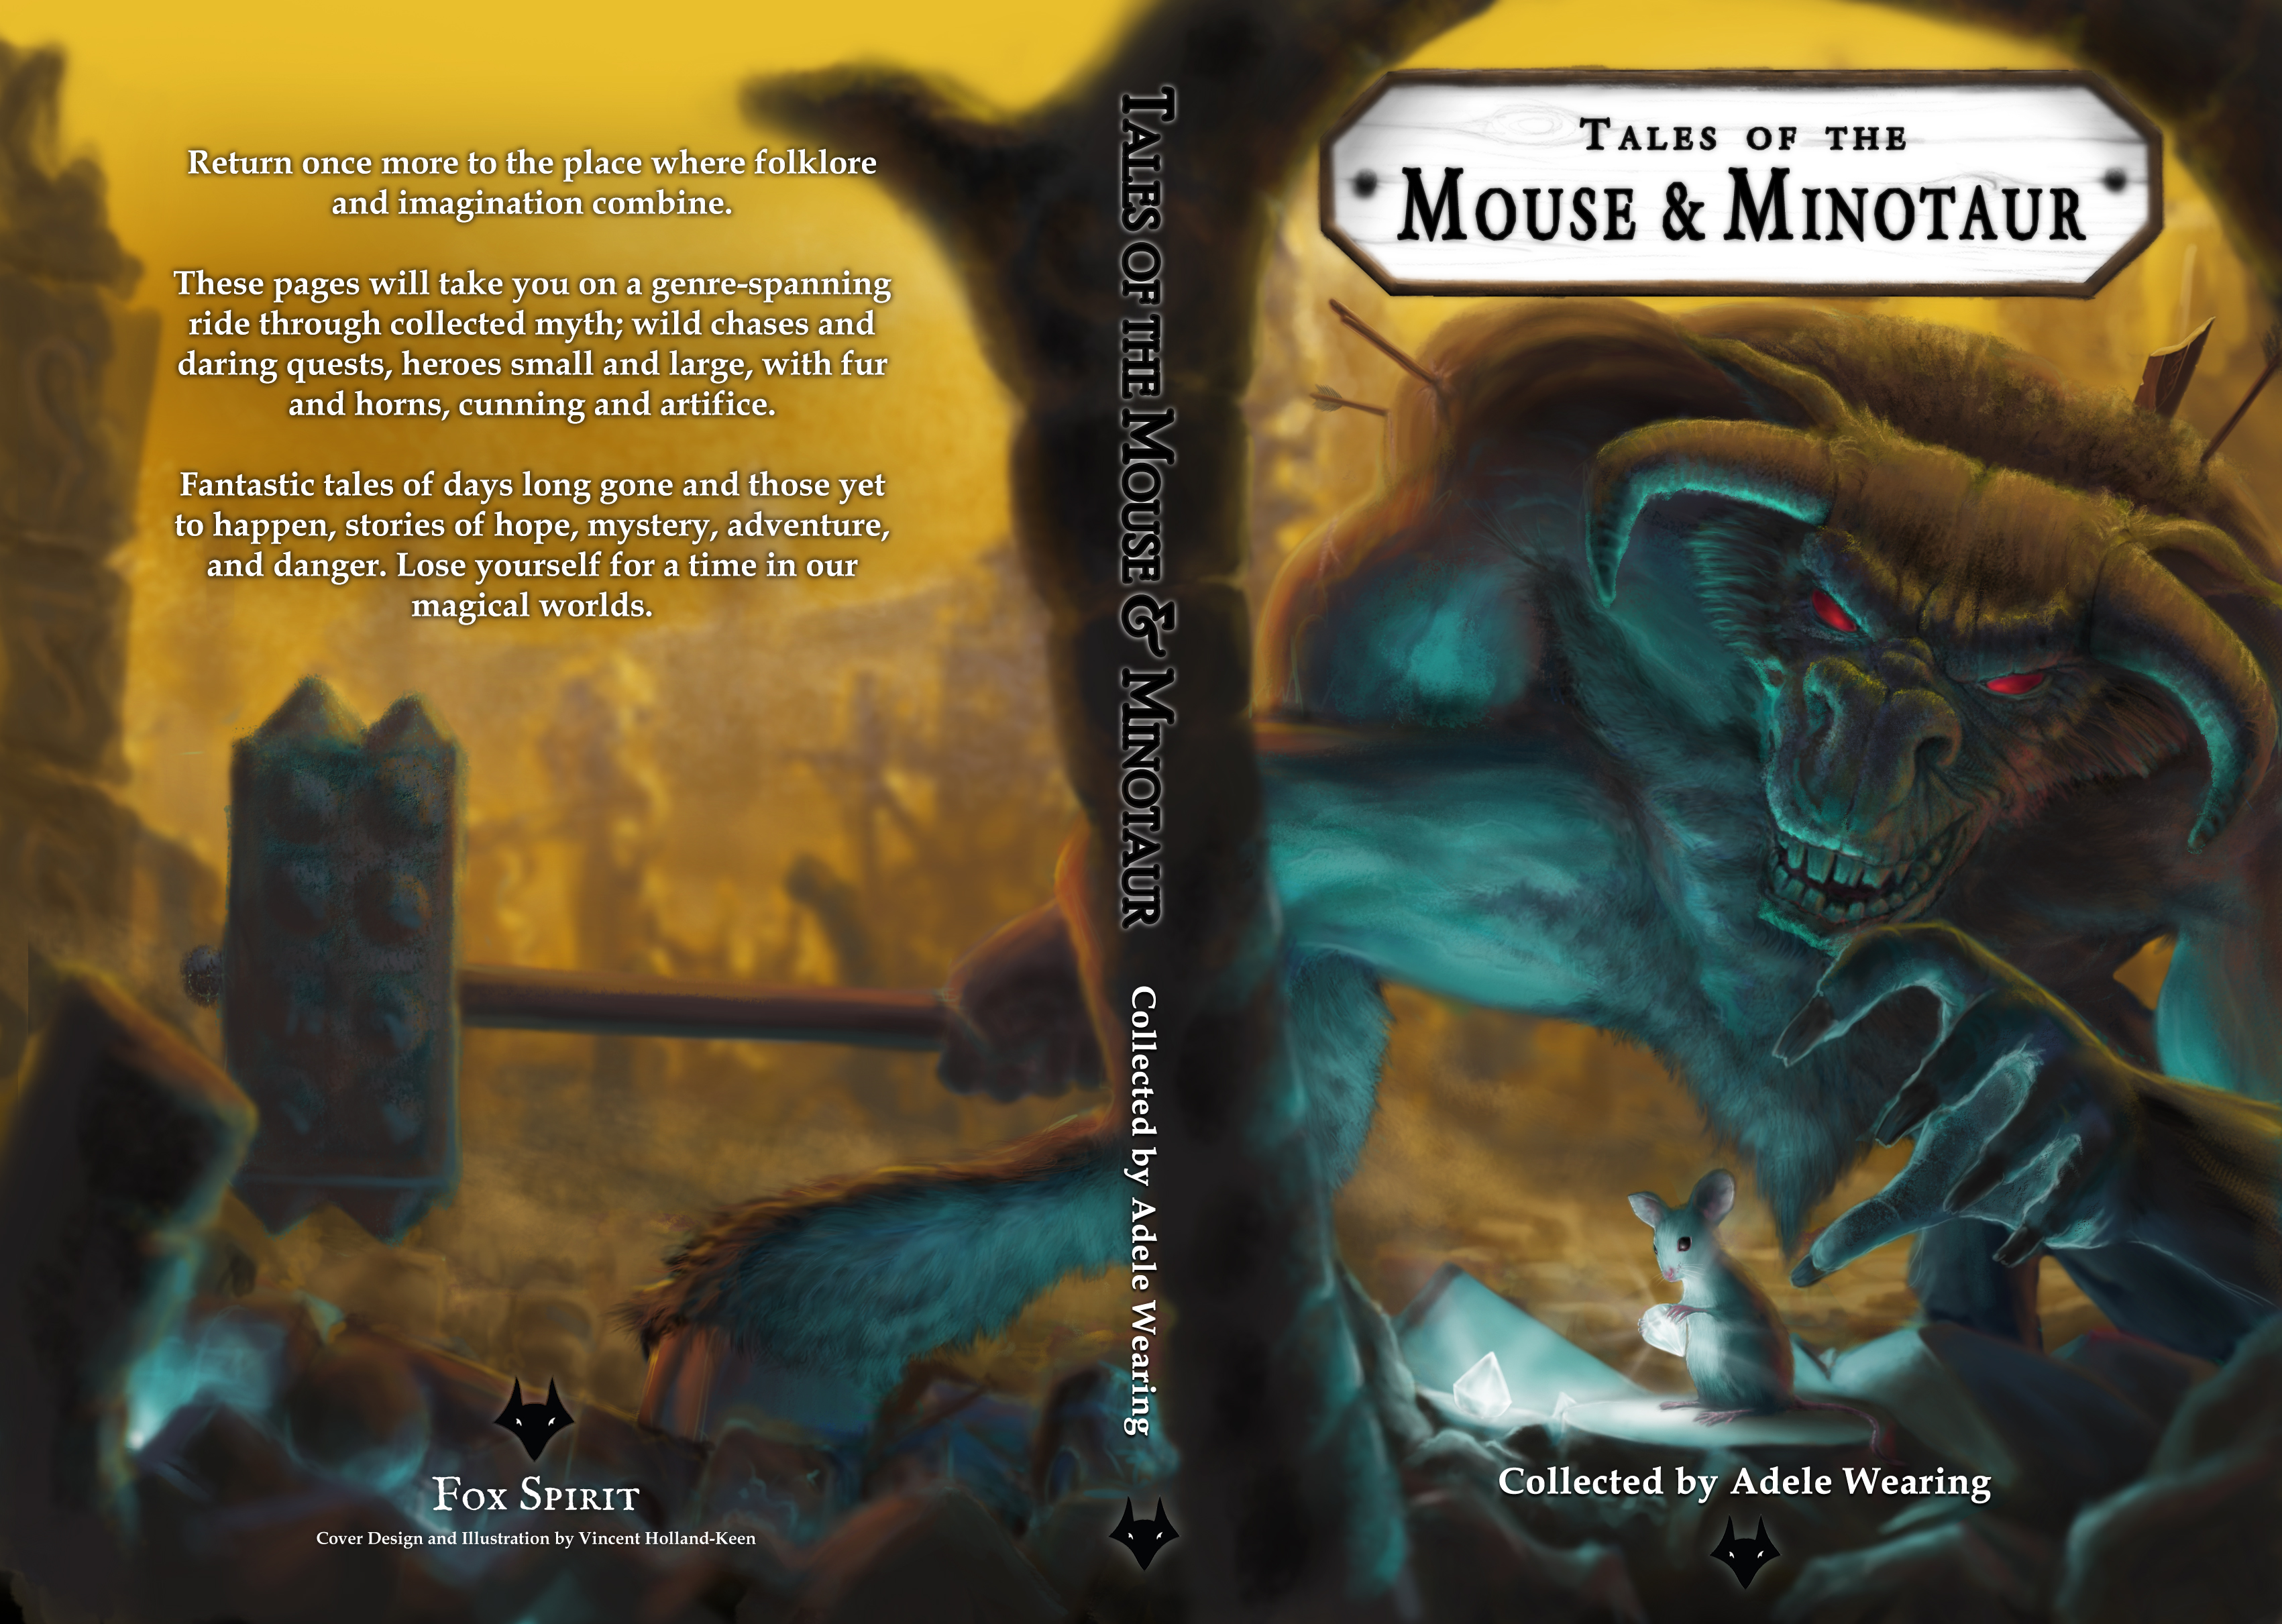 Tales of the Mouse and Minotaur